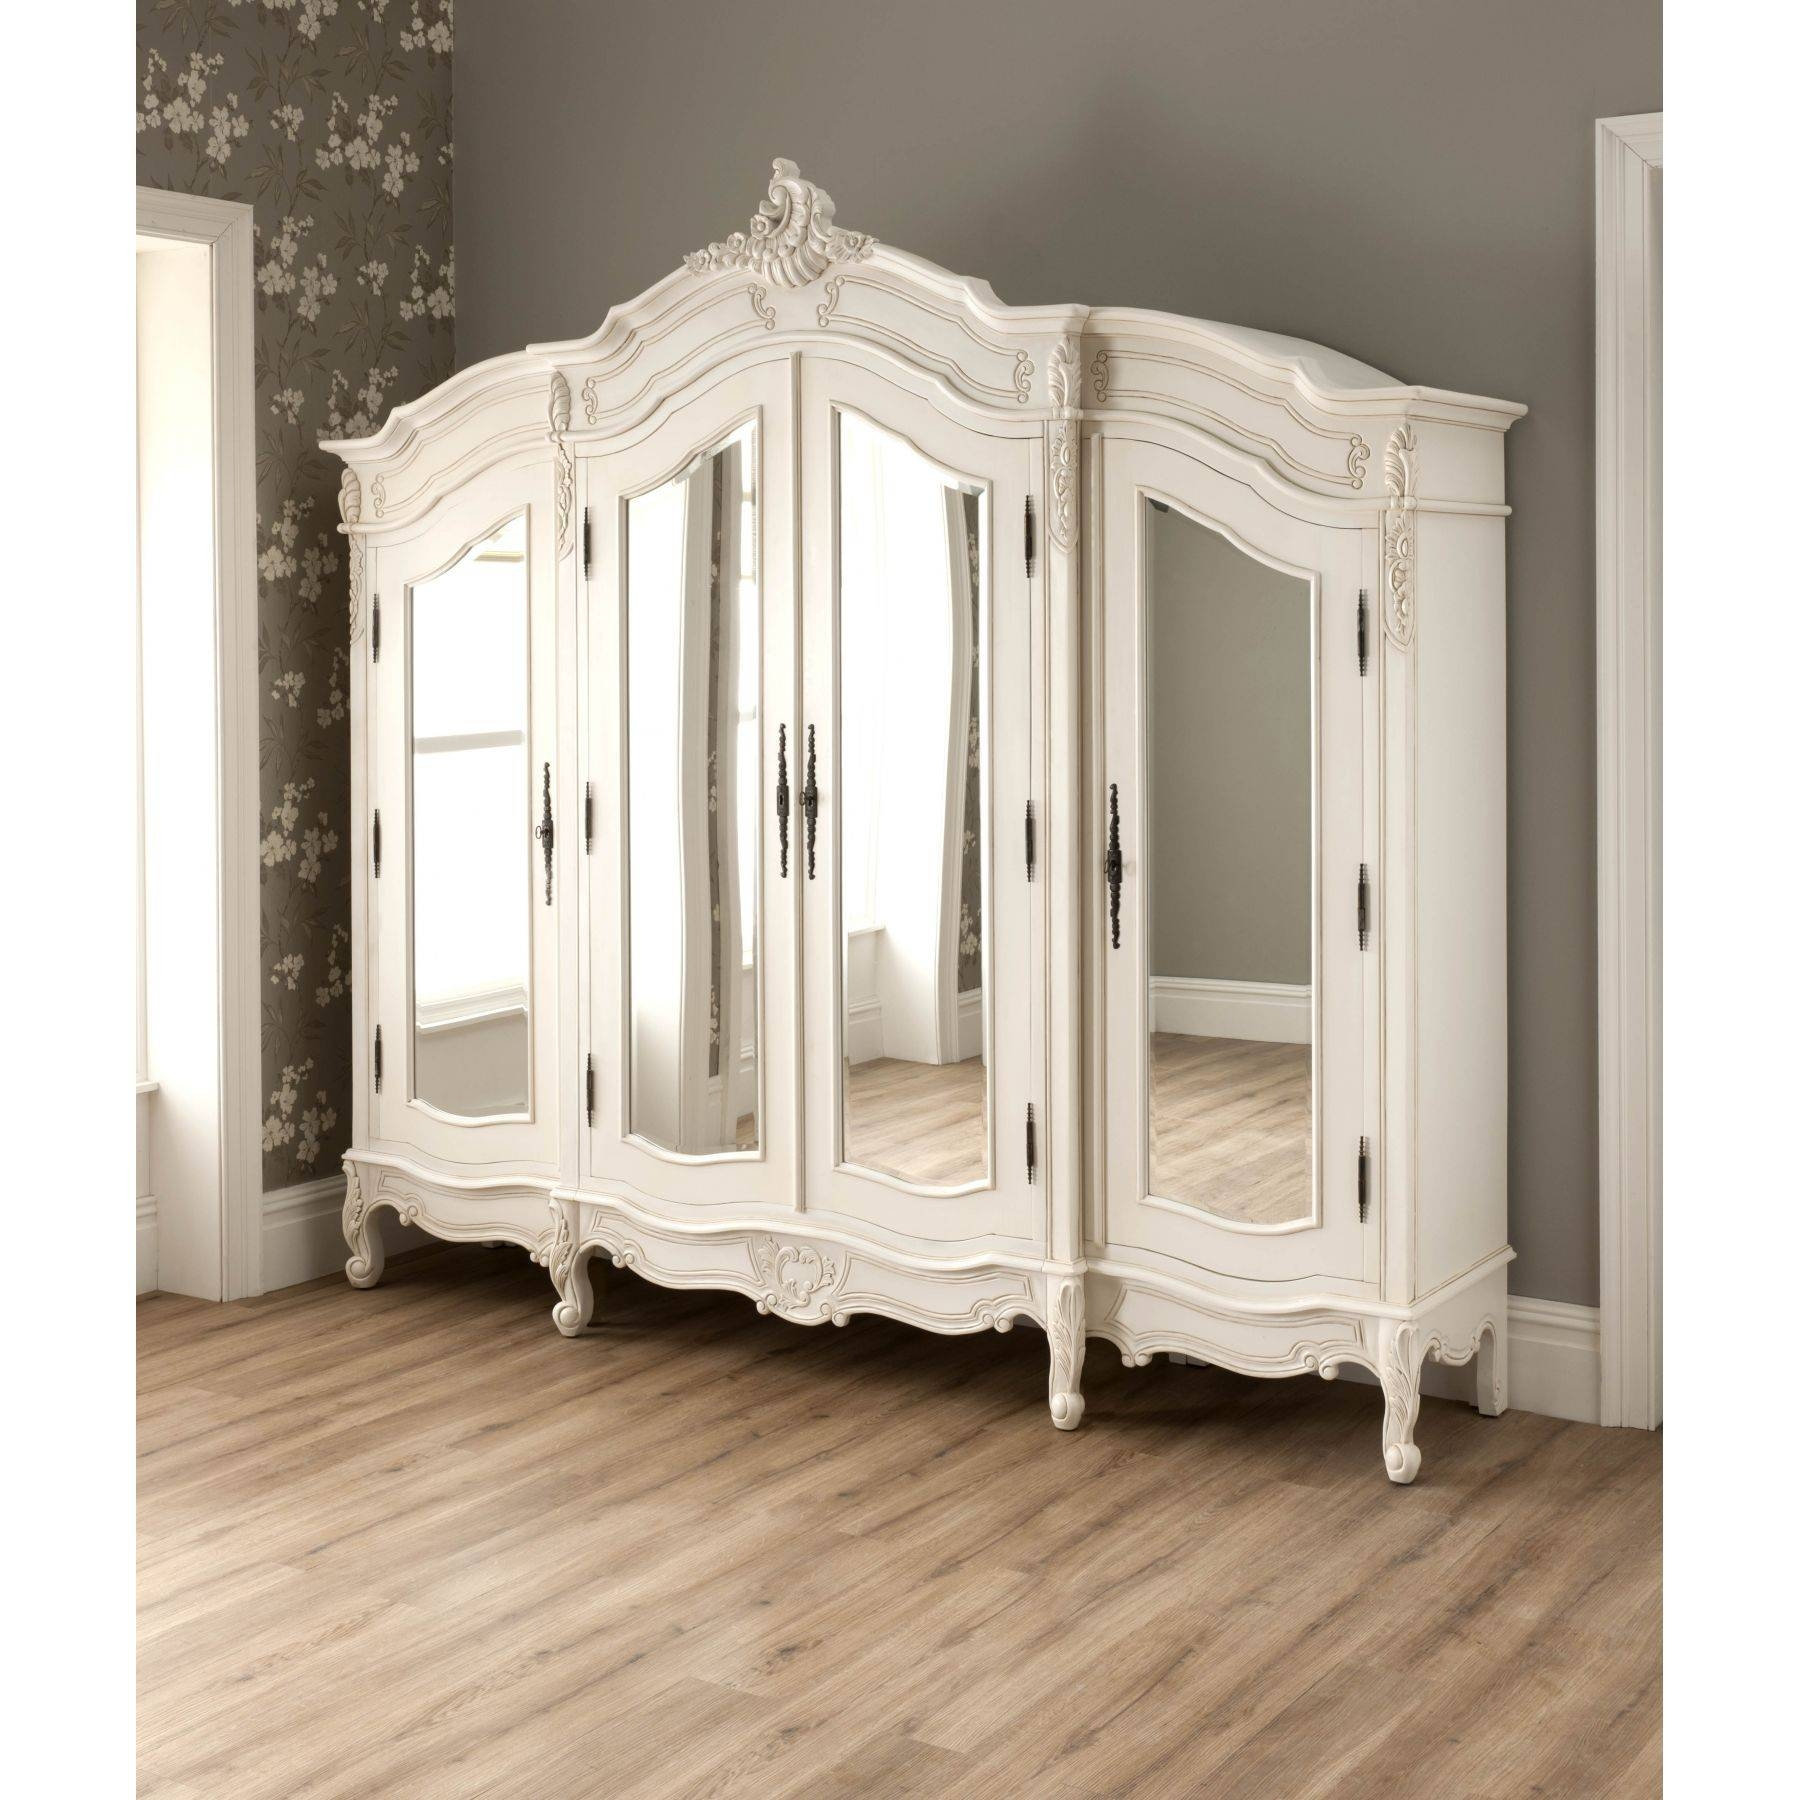 Shabby Chic Wardrobe For Your New Modern Lifestyle - Bangaki inside Shabby Chic Wardrobes (Image 11 of 15)